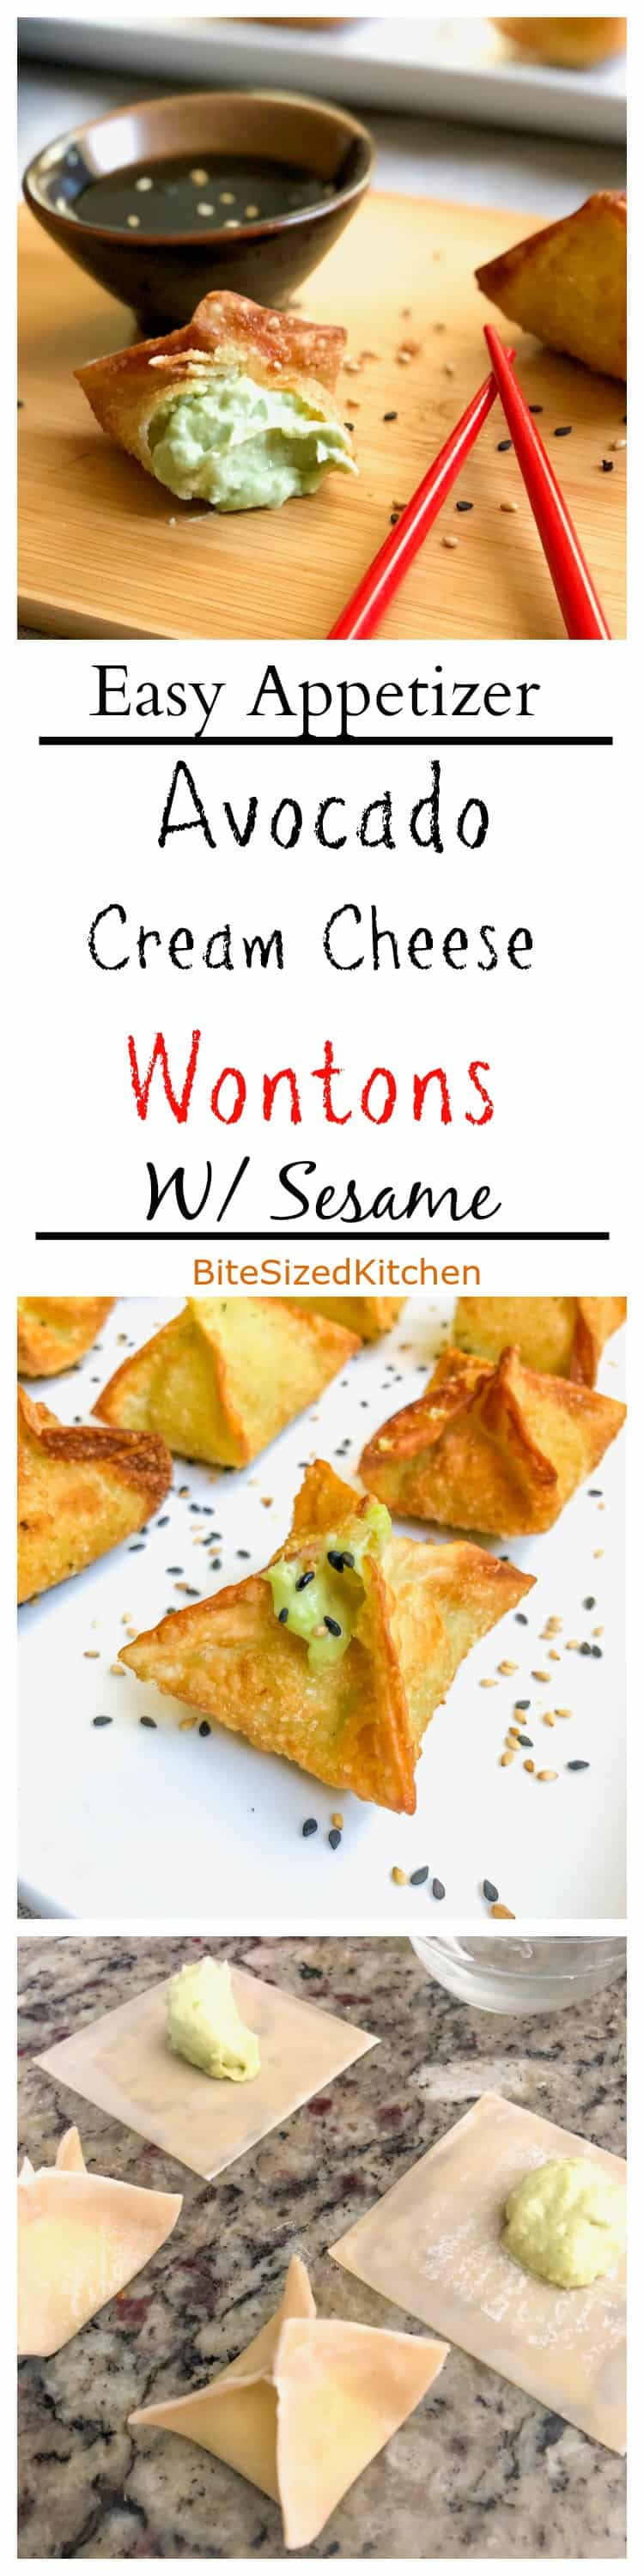 Easy Avocado Sweet Cream Cheese Wontons Appetizer With Sesame Oil